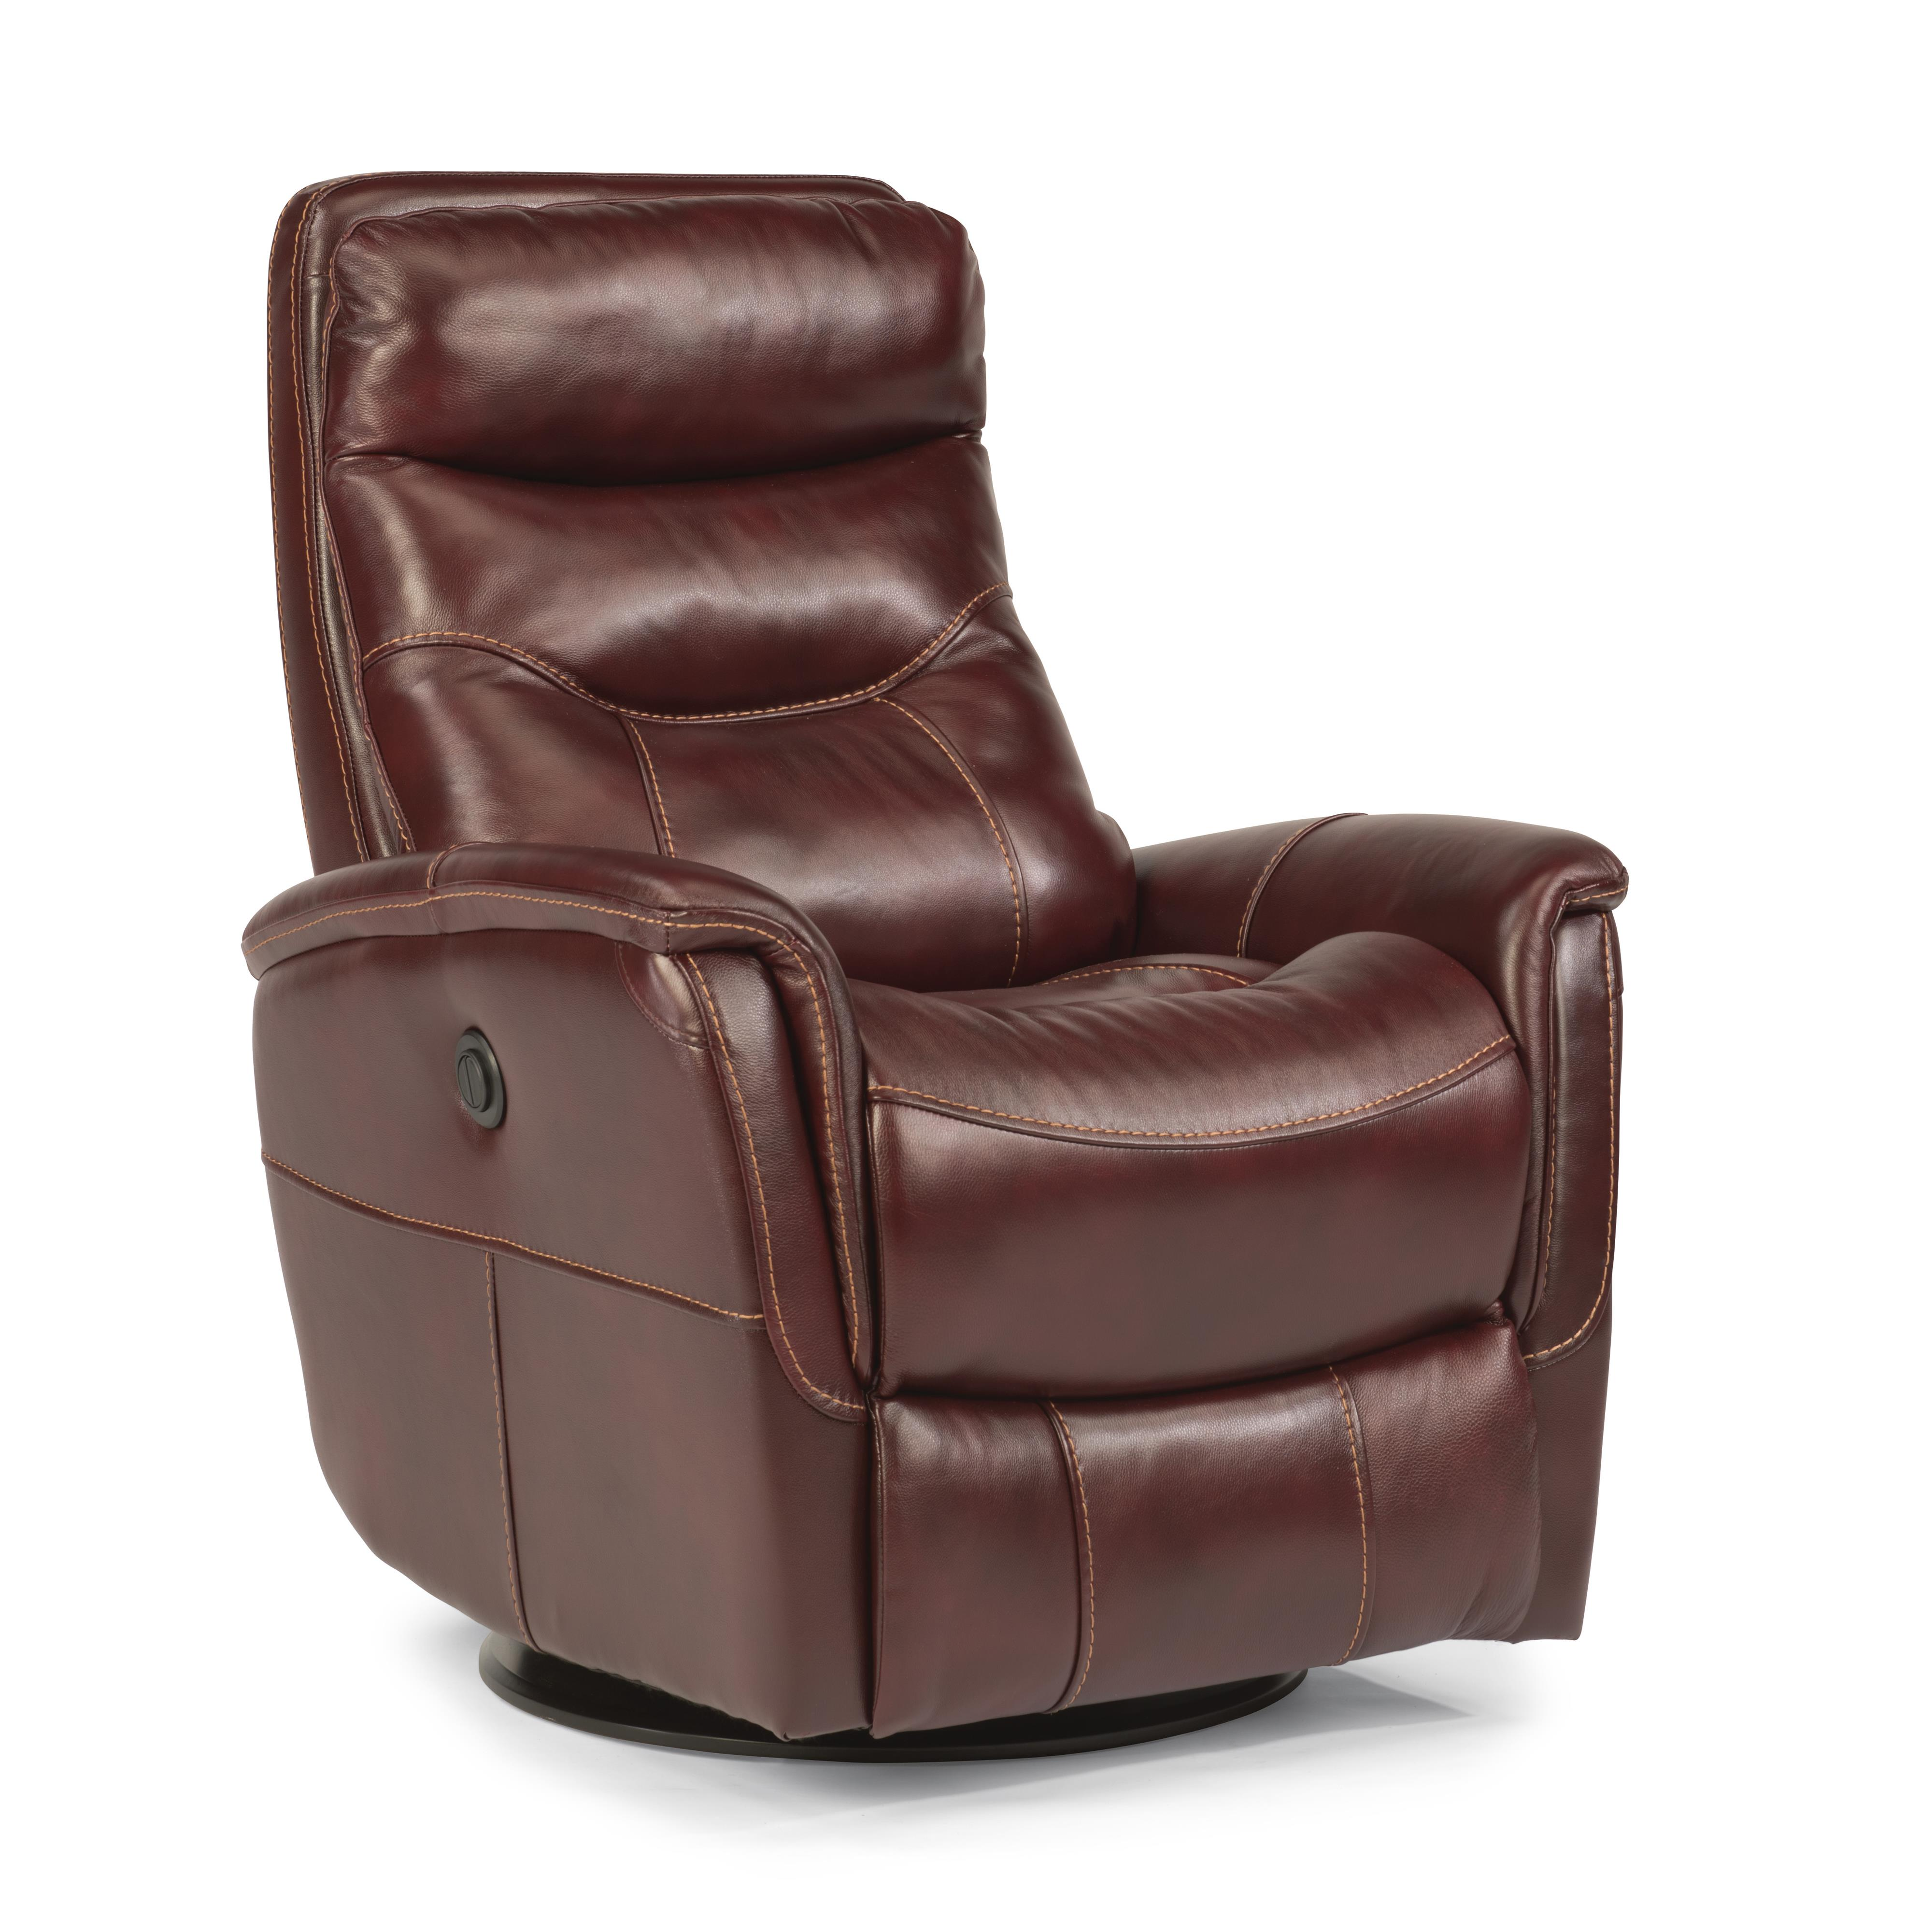 Flexsteel Latitudes Go Anywhere Recliners Alden King Power Swivel Glider Recline - Item Number 1393  sc 1 st  Wayside Furniture & Flexsteel Latitudes Go Anywhere Recliners Alden King-Size Power ... islam-shia.org